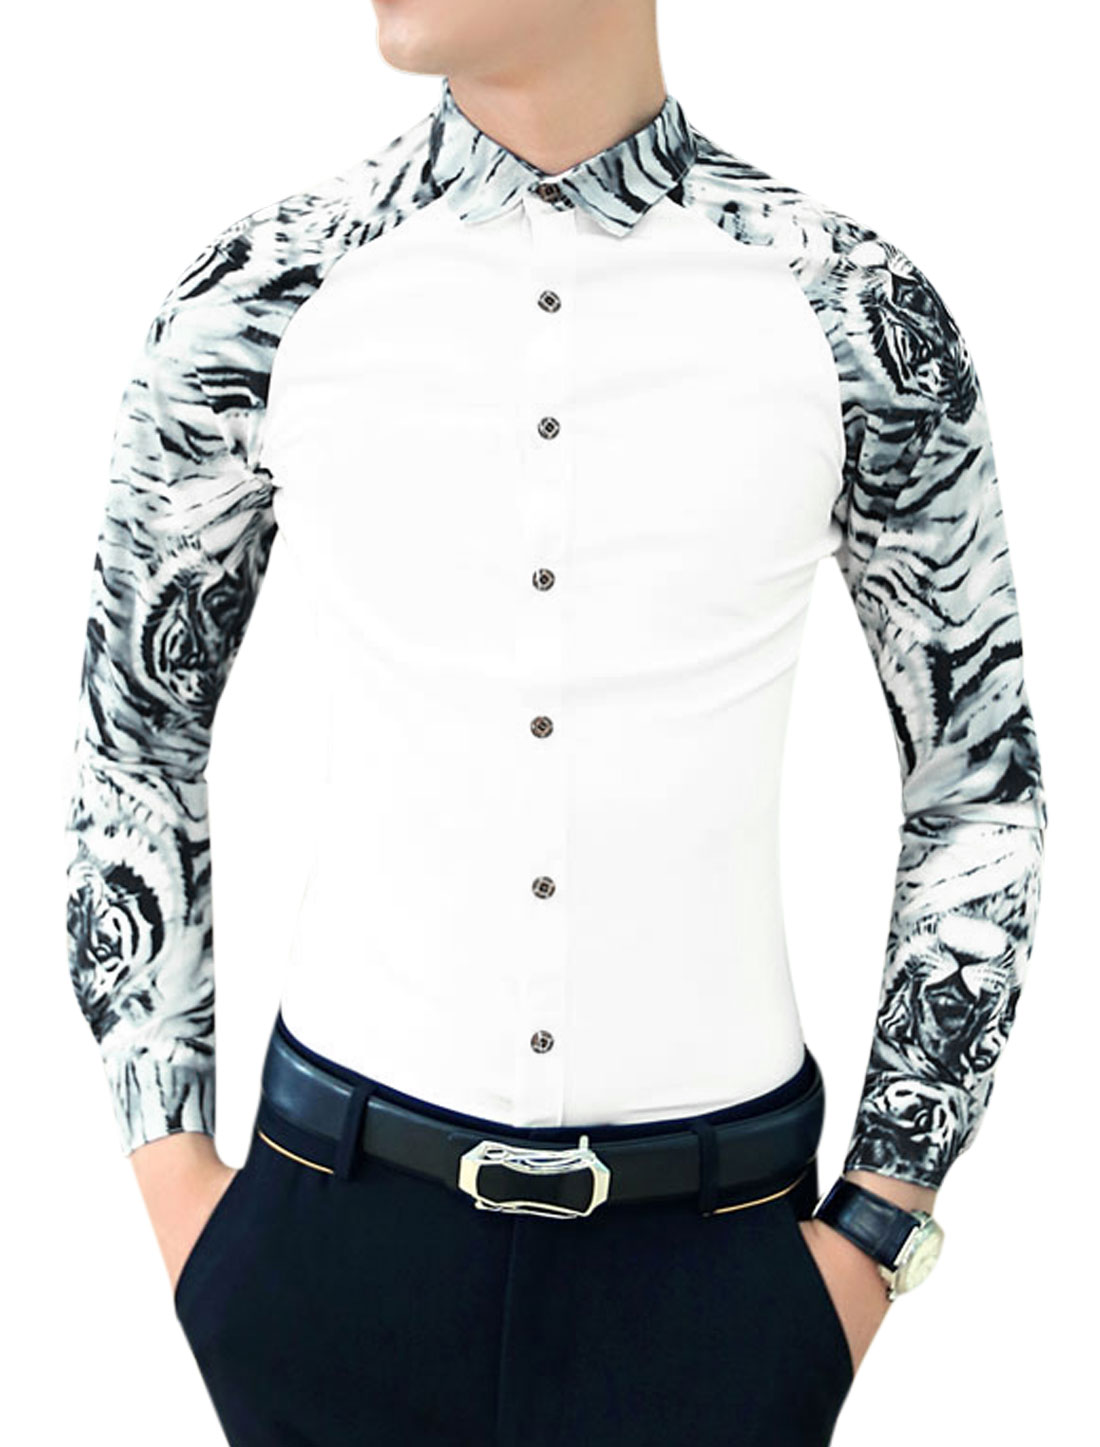 Men Contrast Long Sleeves Contrast White Tiger Print Slim Cut Shirt White S